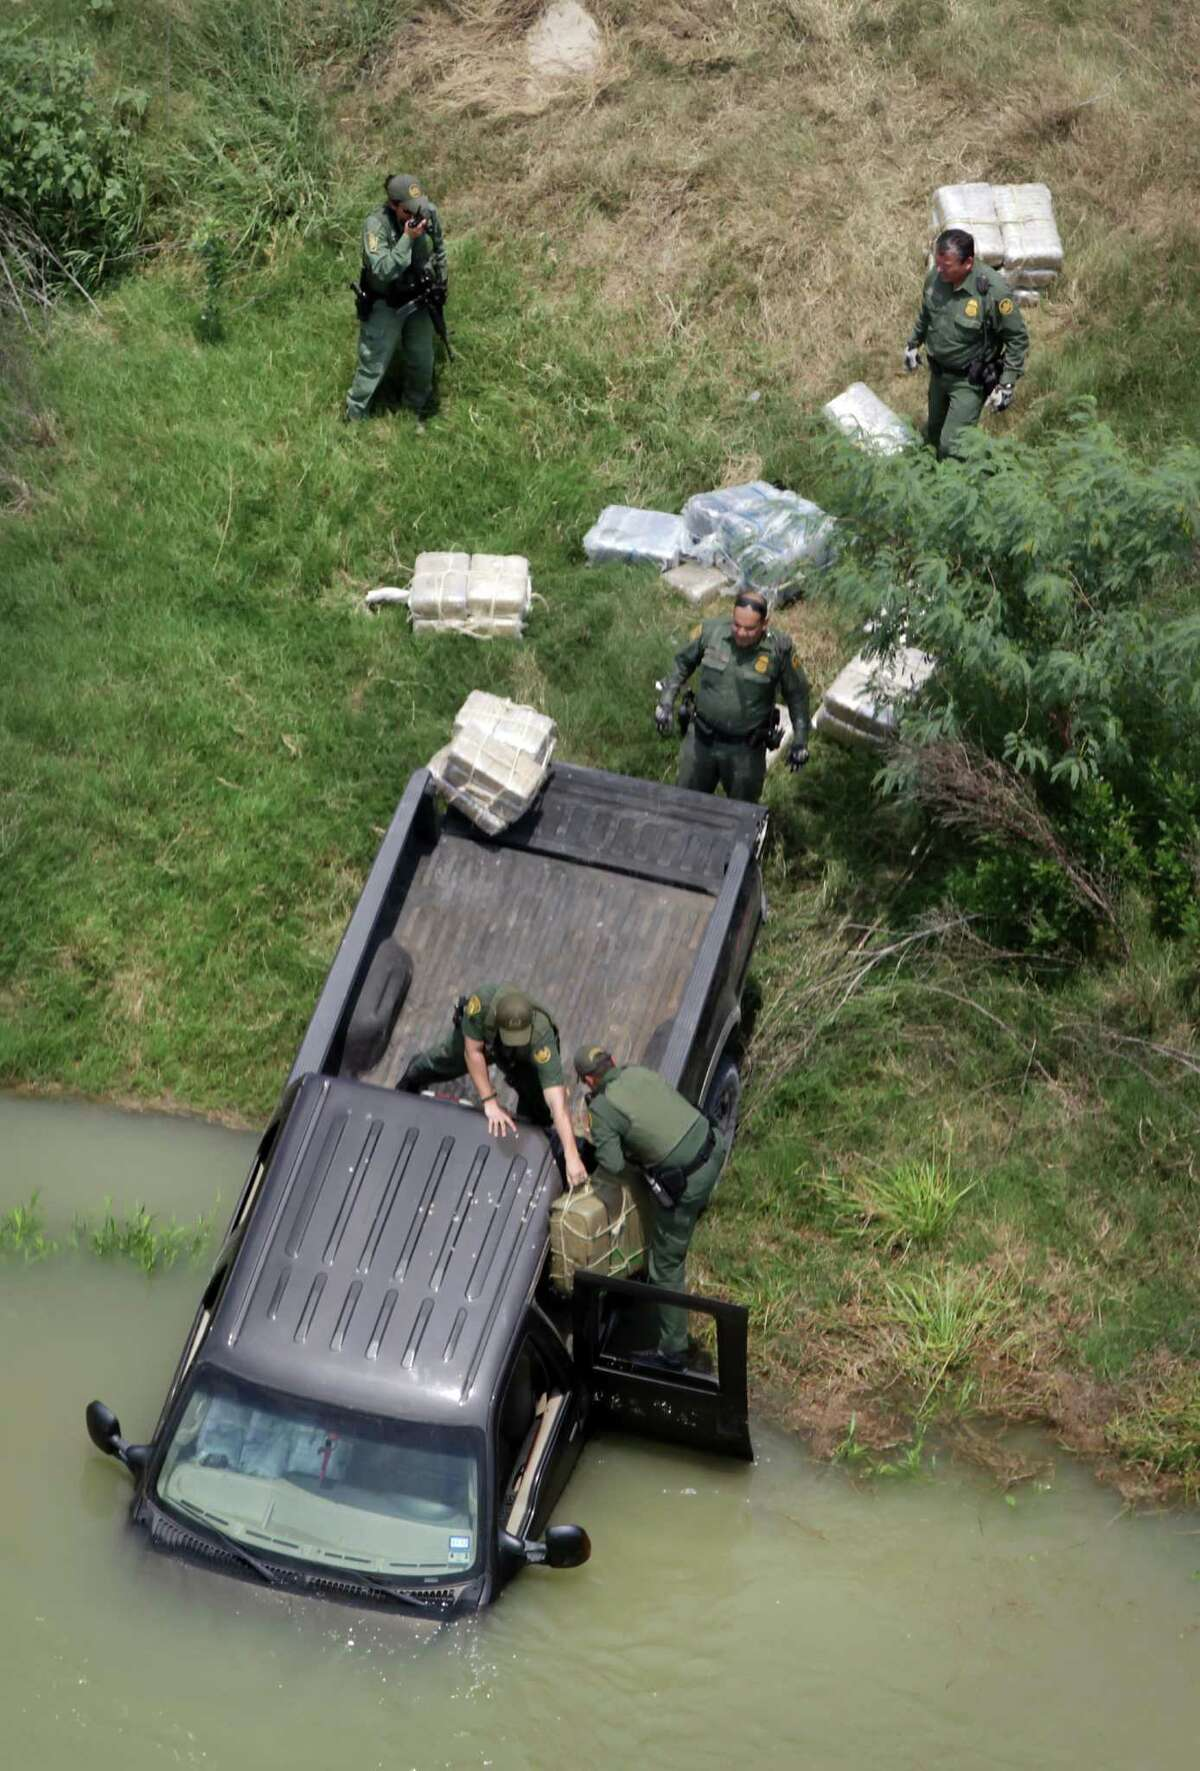 In this photo from May, border agents remove packages of drugs from a stolen pickup that had been detected and chased back to the Rio Grande, where the occupants ditched the truck in the water and swam to Mexico.